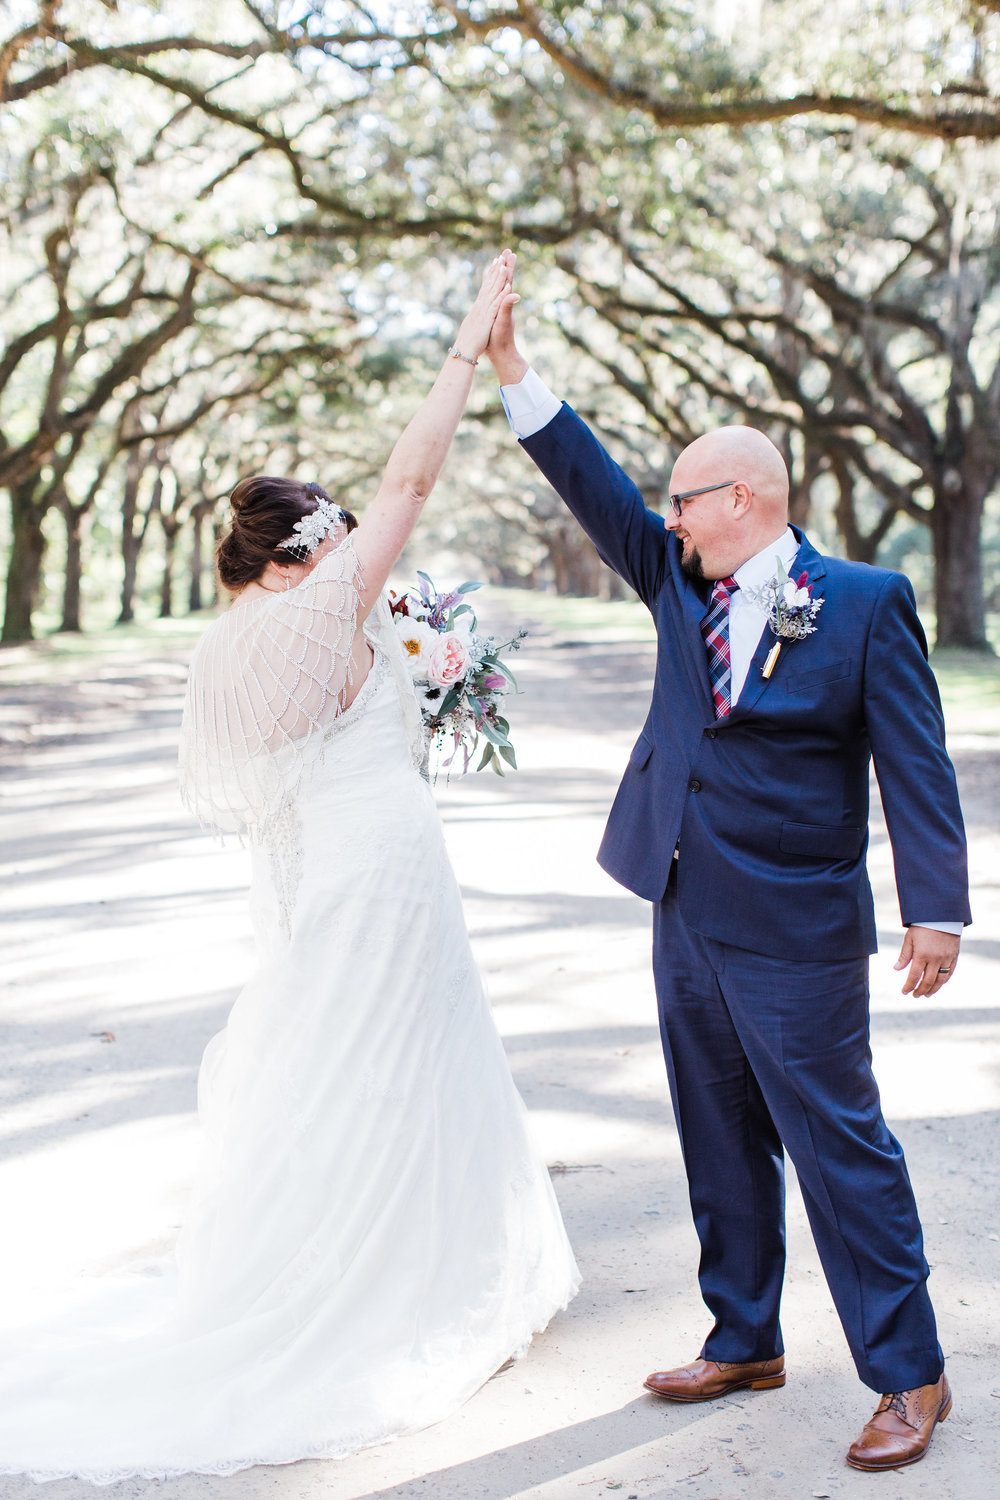 apt-b-photography-kristy-rob-wormsloe-elopment-savannah-wedding-photographer-savannah-elopement-wormsloe-wedding-historic-savannah-elopement-photographer-26.jpg